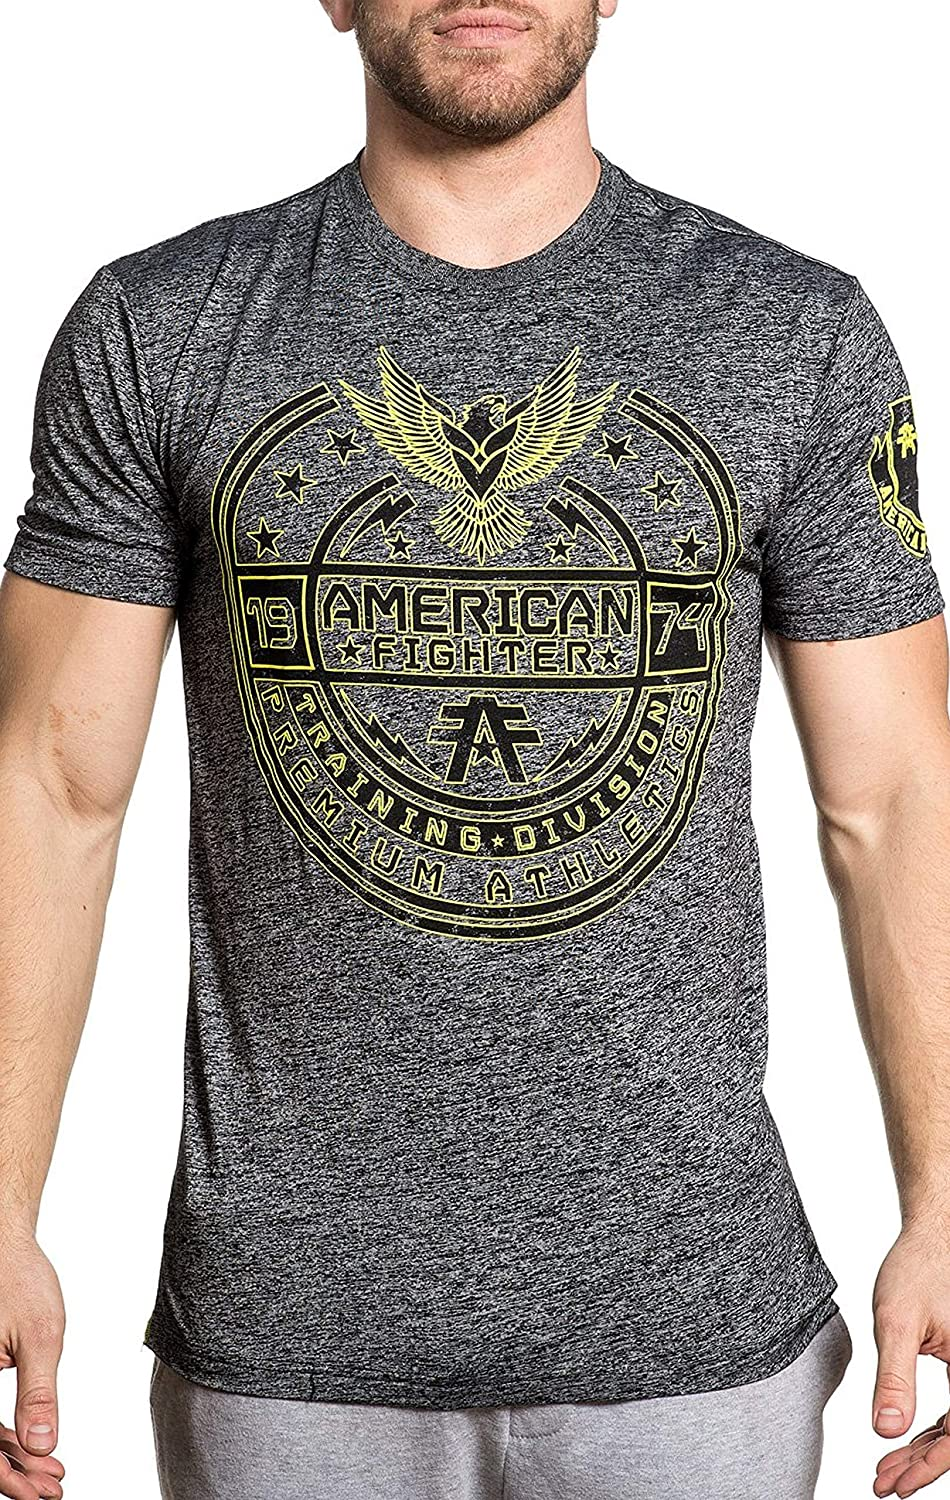 403159baae37 American Fighter Fighter Fighter Men's Capital Graphic T-Shirt 66a3b8